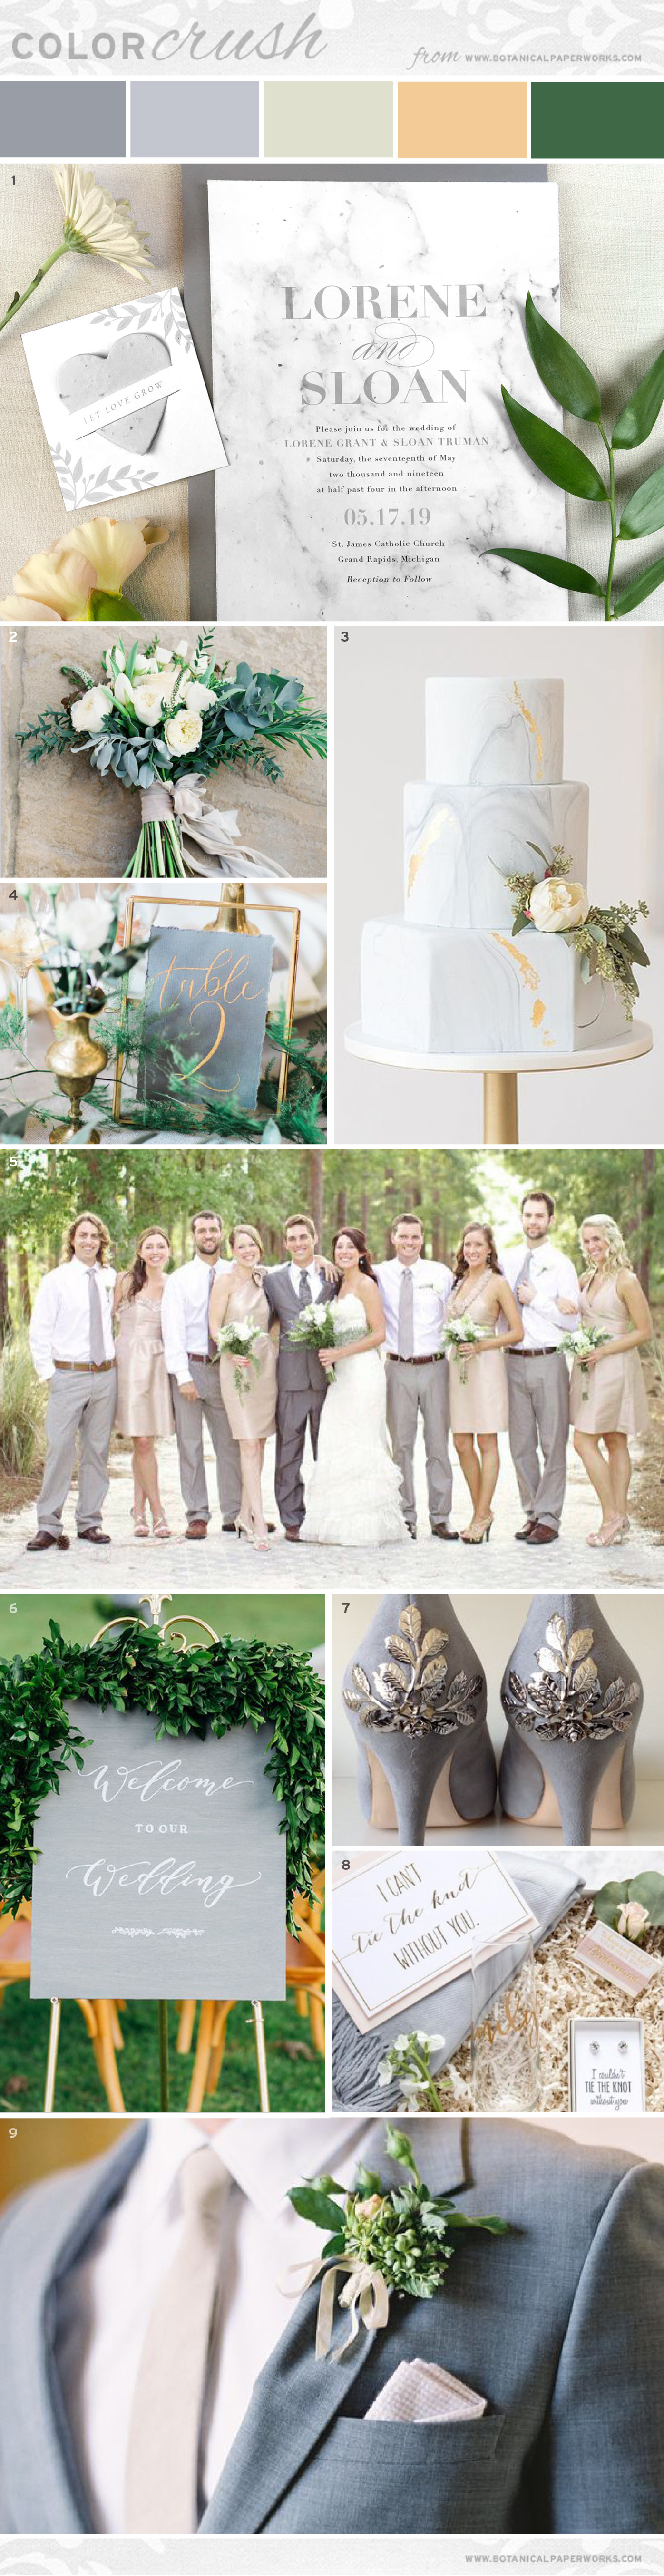 This subtle and elegant wedding inspiration features grey, greenery, ivory and gold accents.